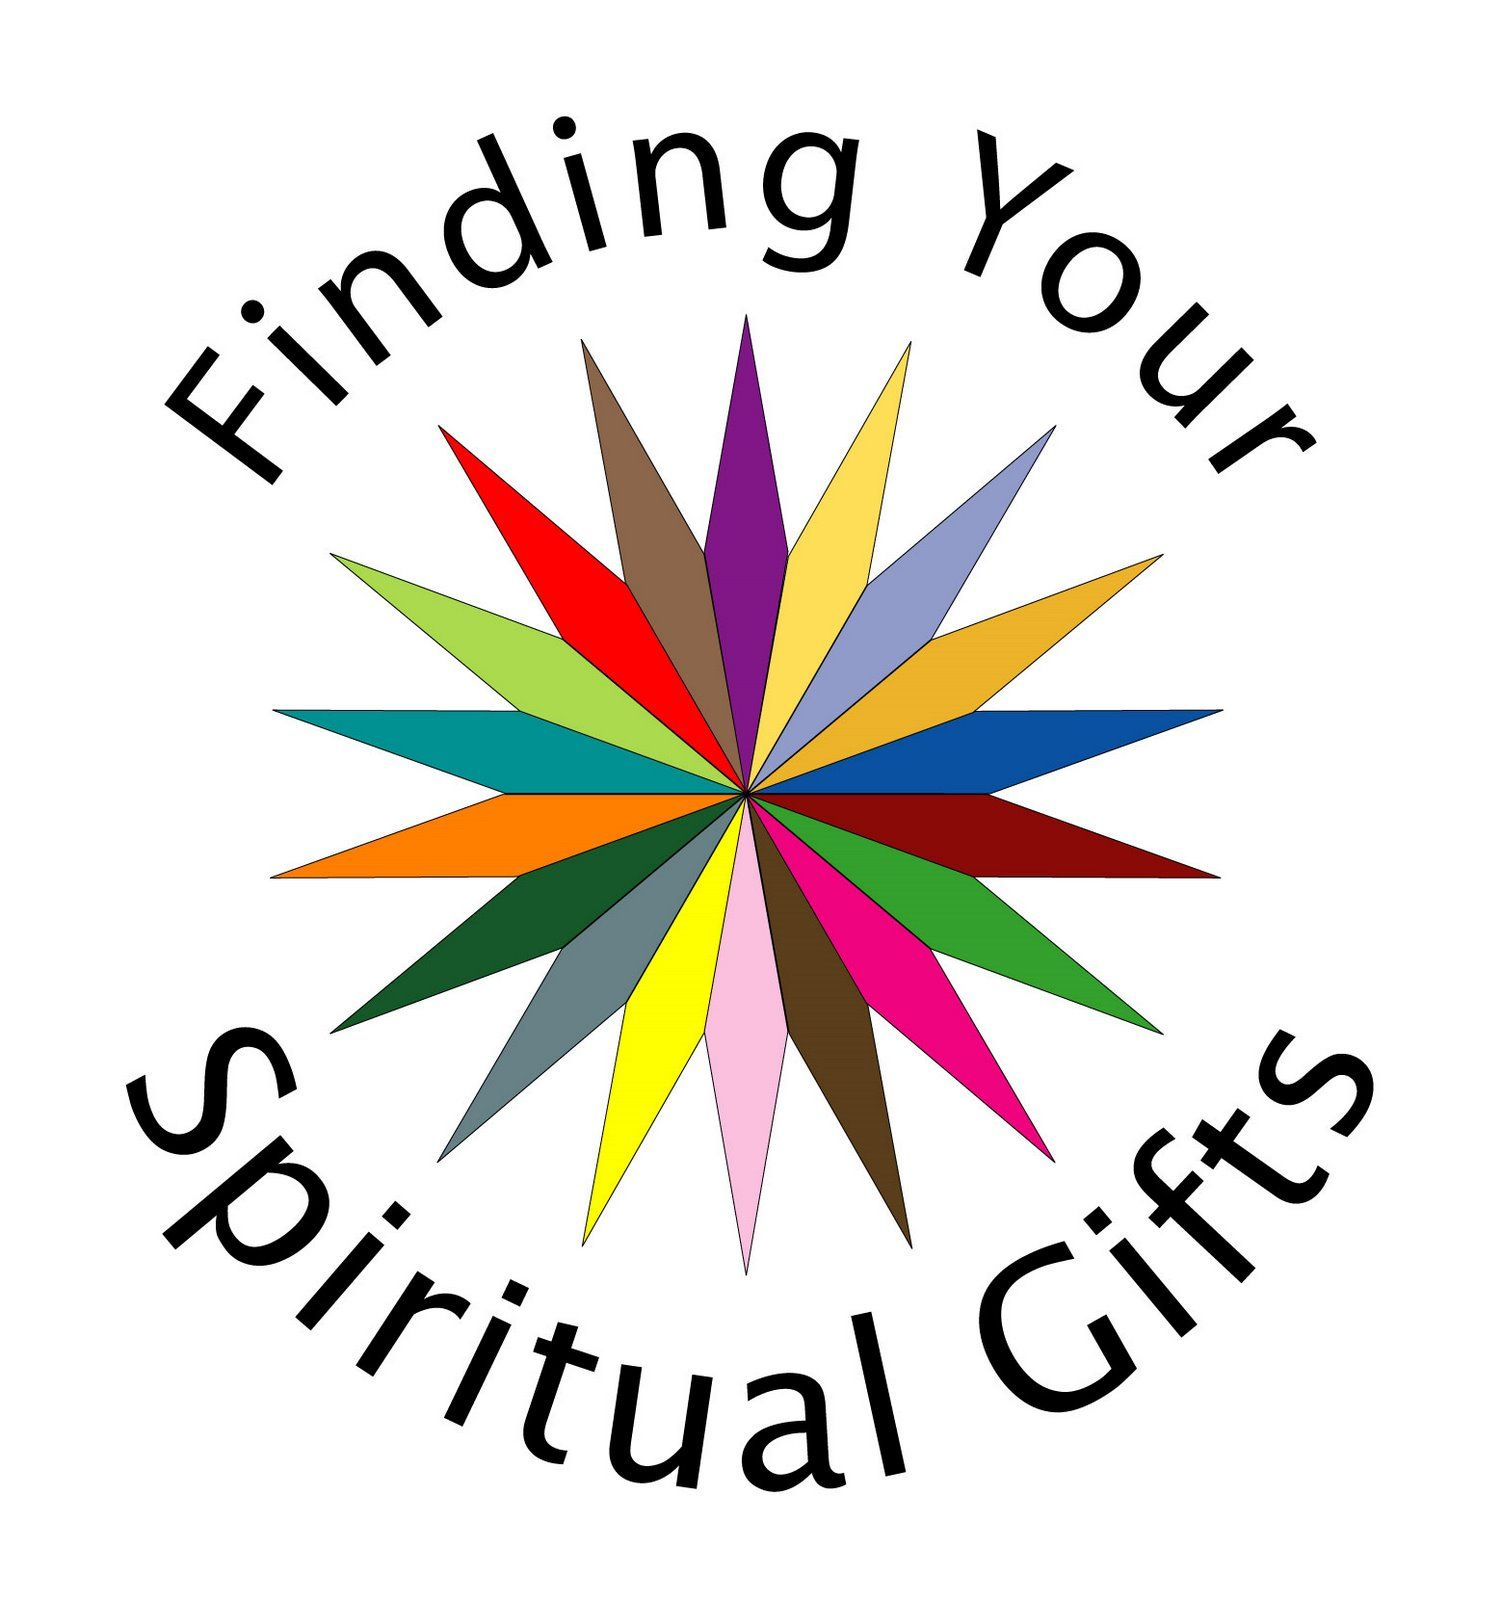 Spiritual manifestations bible study lesson on 9 spiritual gifts spiritual manifestations bible study lesson on 9 spiritual gifts thepropheticbooksofbible negle Image collections